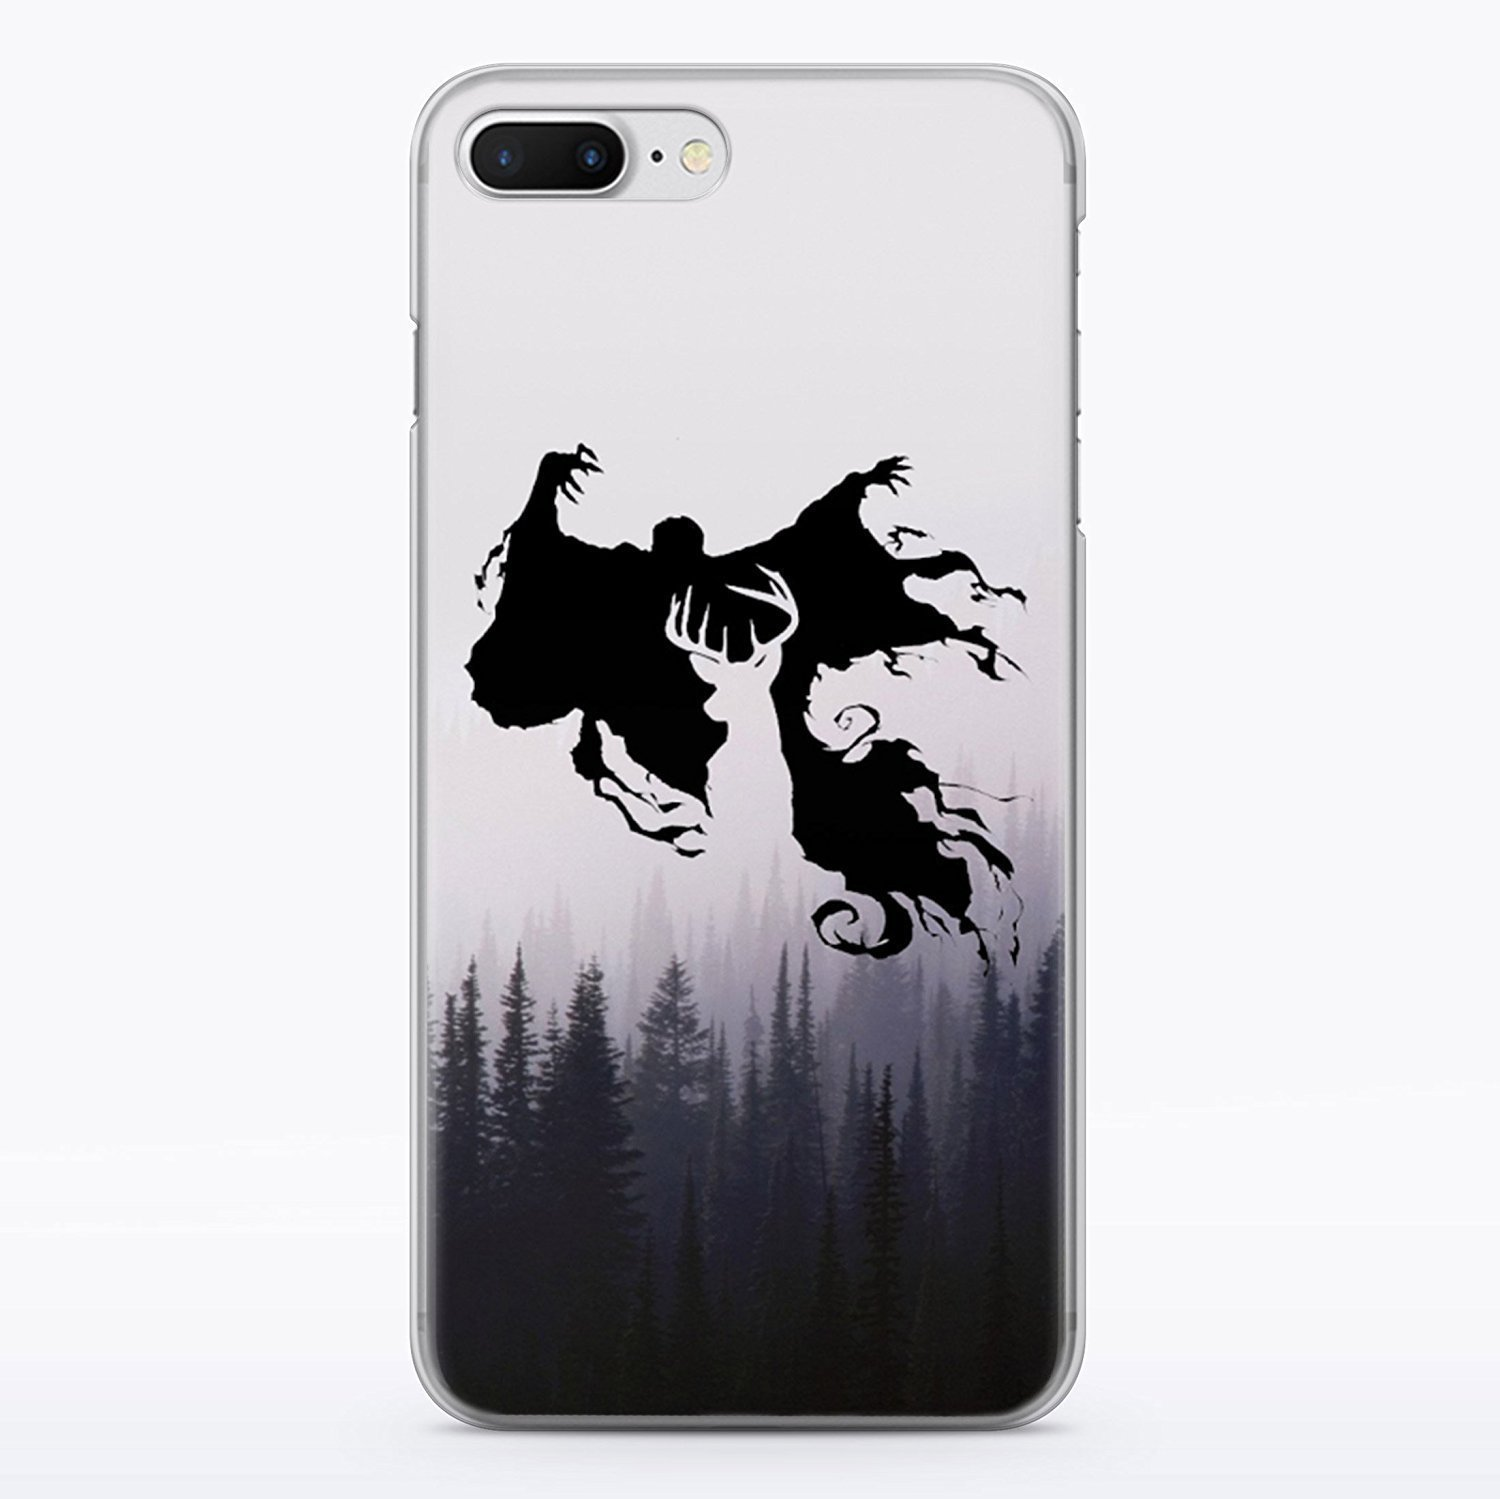 Harry Potter Patronus Deer iPhone 7 Plus and iPhone 8 Plus Clear Case Dementor Expecto Patronum Hogwarts Fandom Cell Phone Durable Plastic Case for iPhone 7 Plus iPhone 8 Plus Foggy Wood Nature MA1293